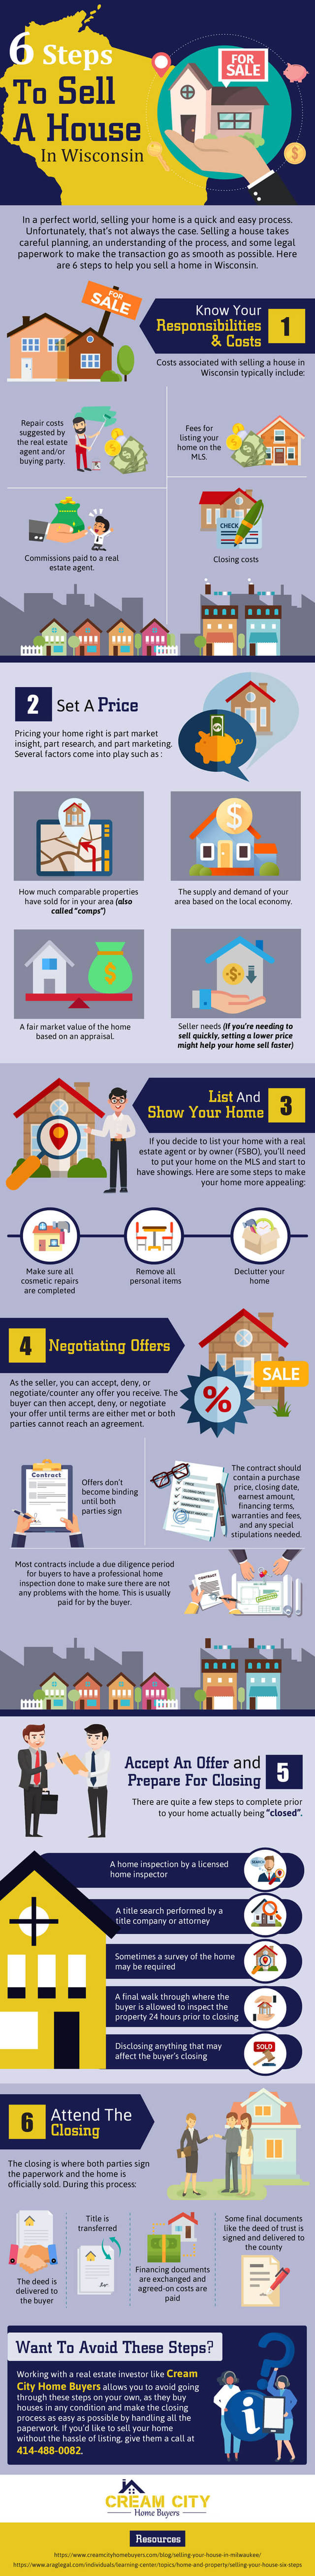 Steps sell house in wisconsin infographic